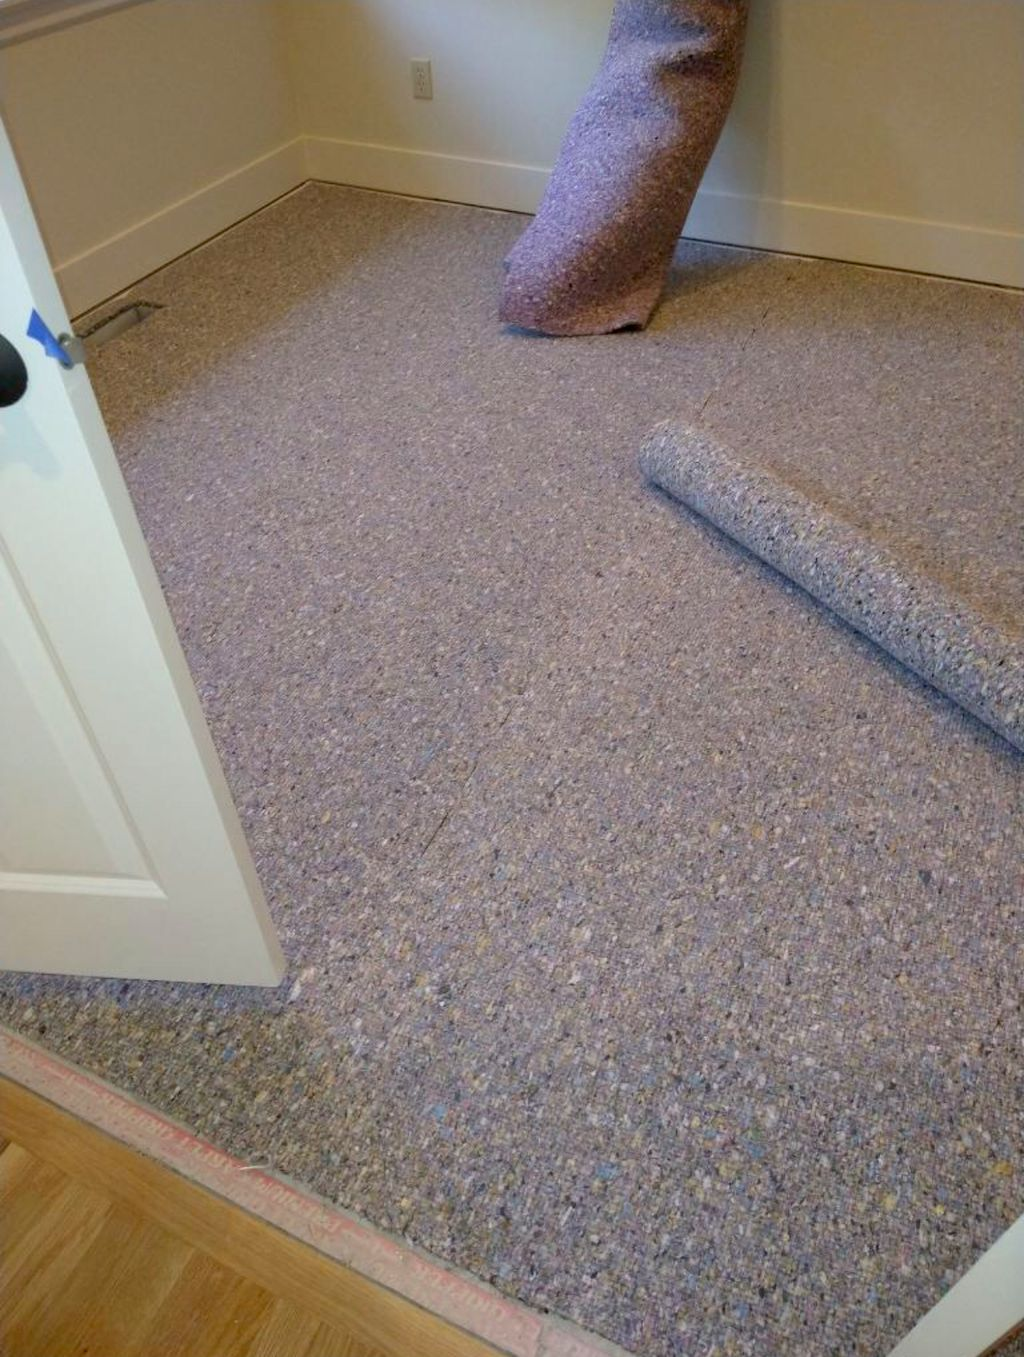 Carpet replacement